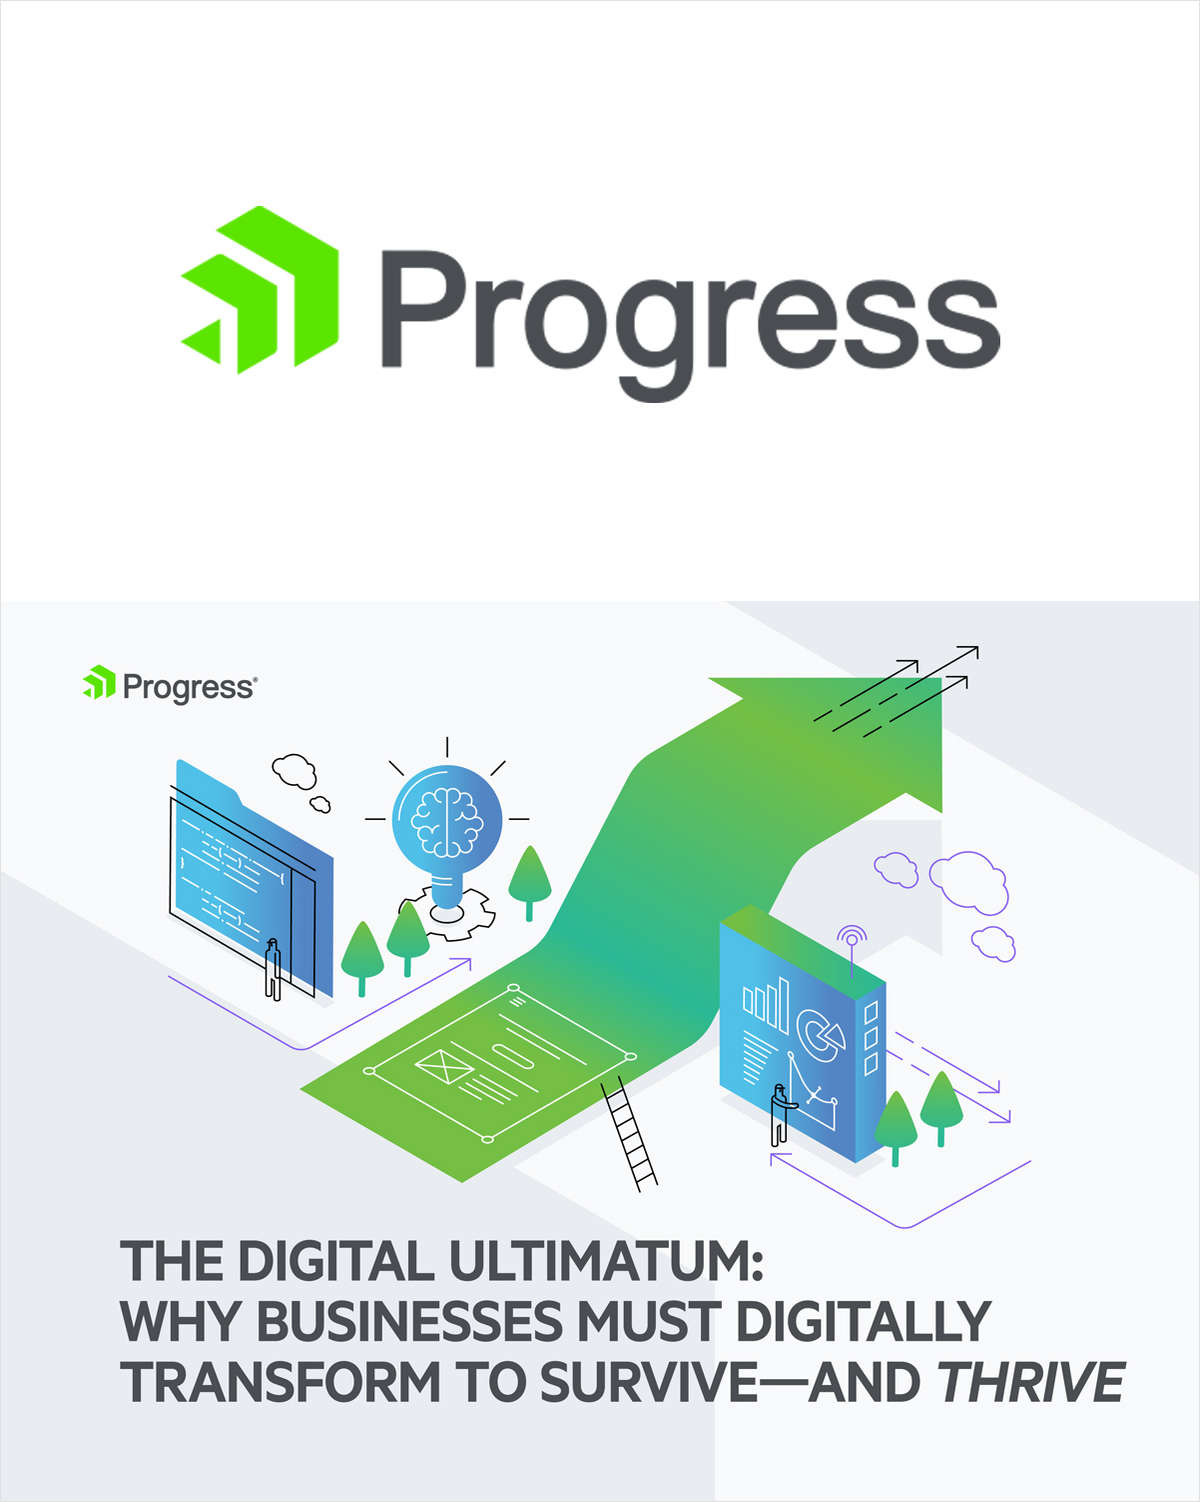 The Digital Ultimatum: What's Your Plan?